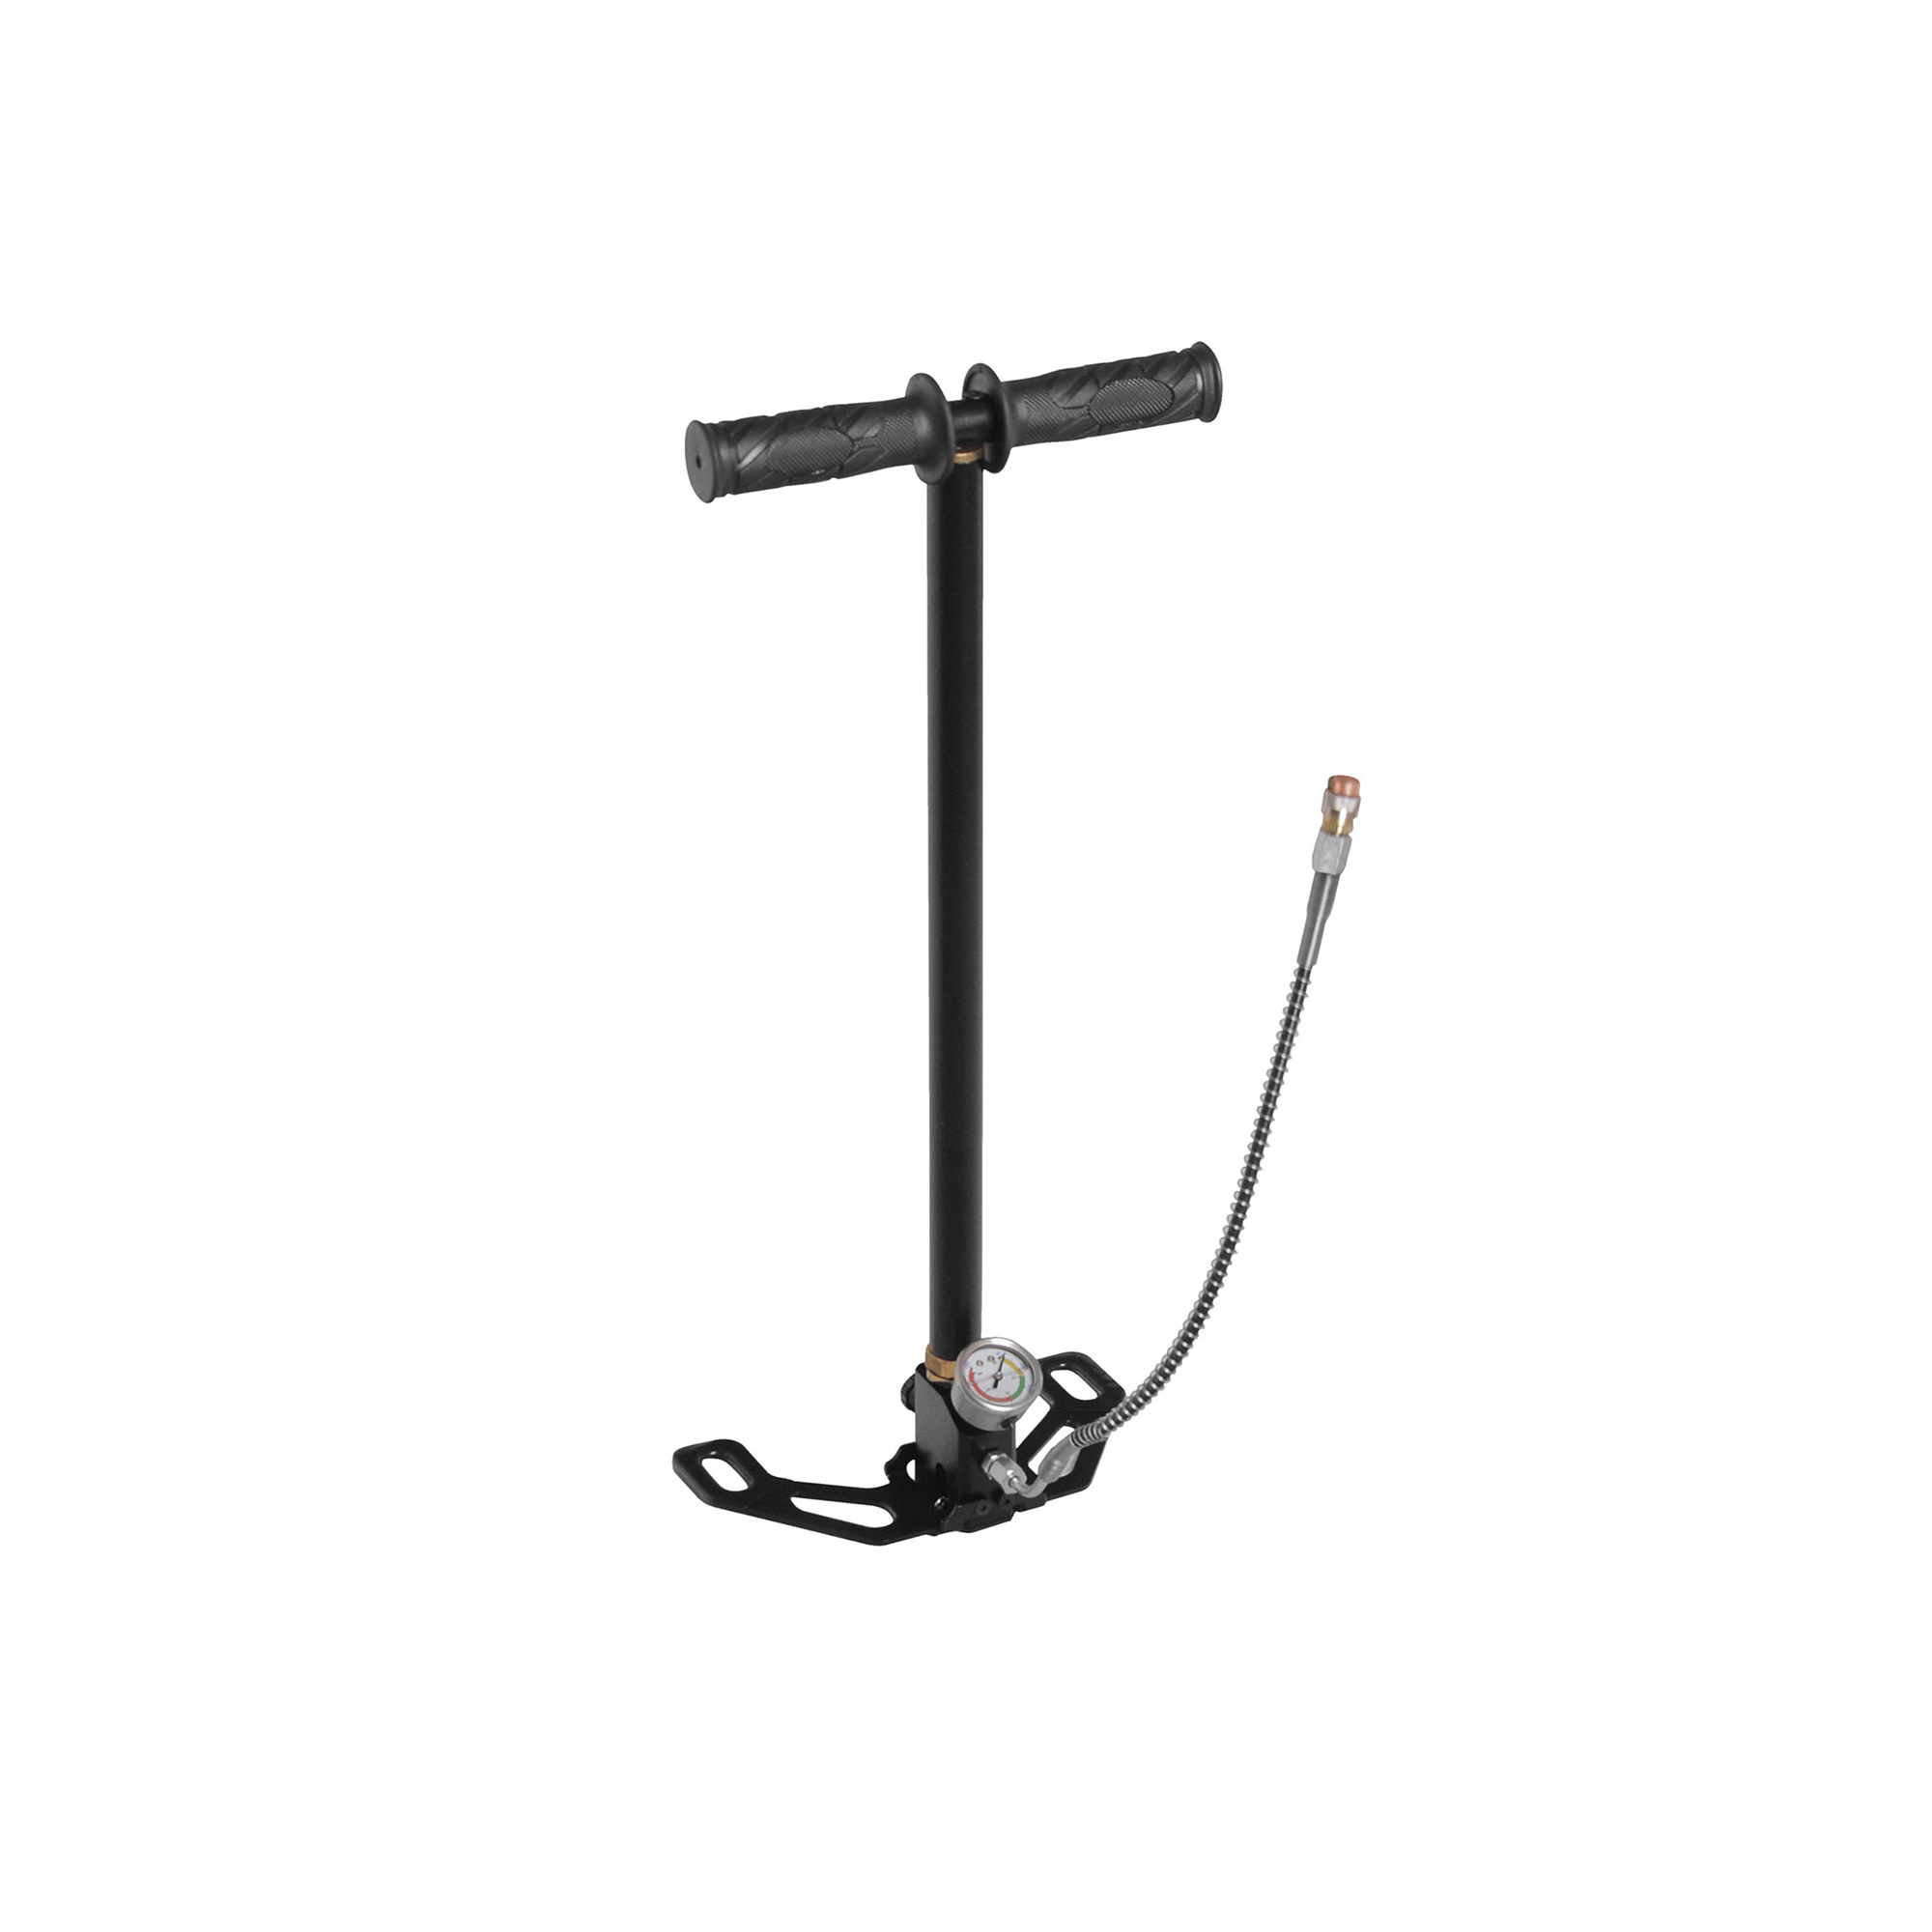 Gamo Hand Pump - Fills Gamo PCP Guns